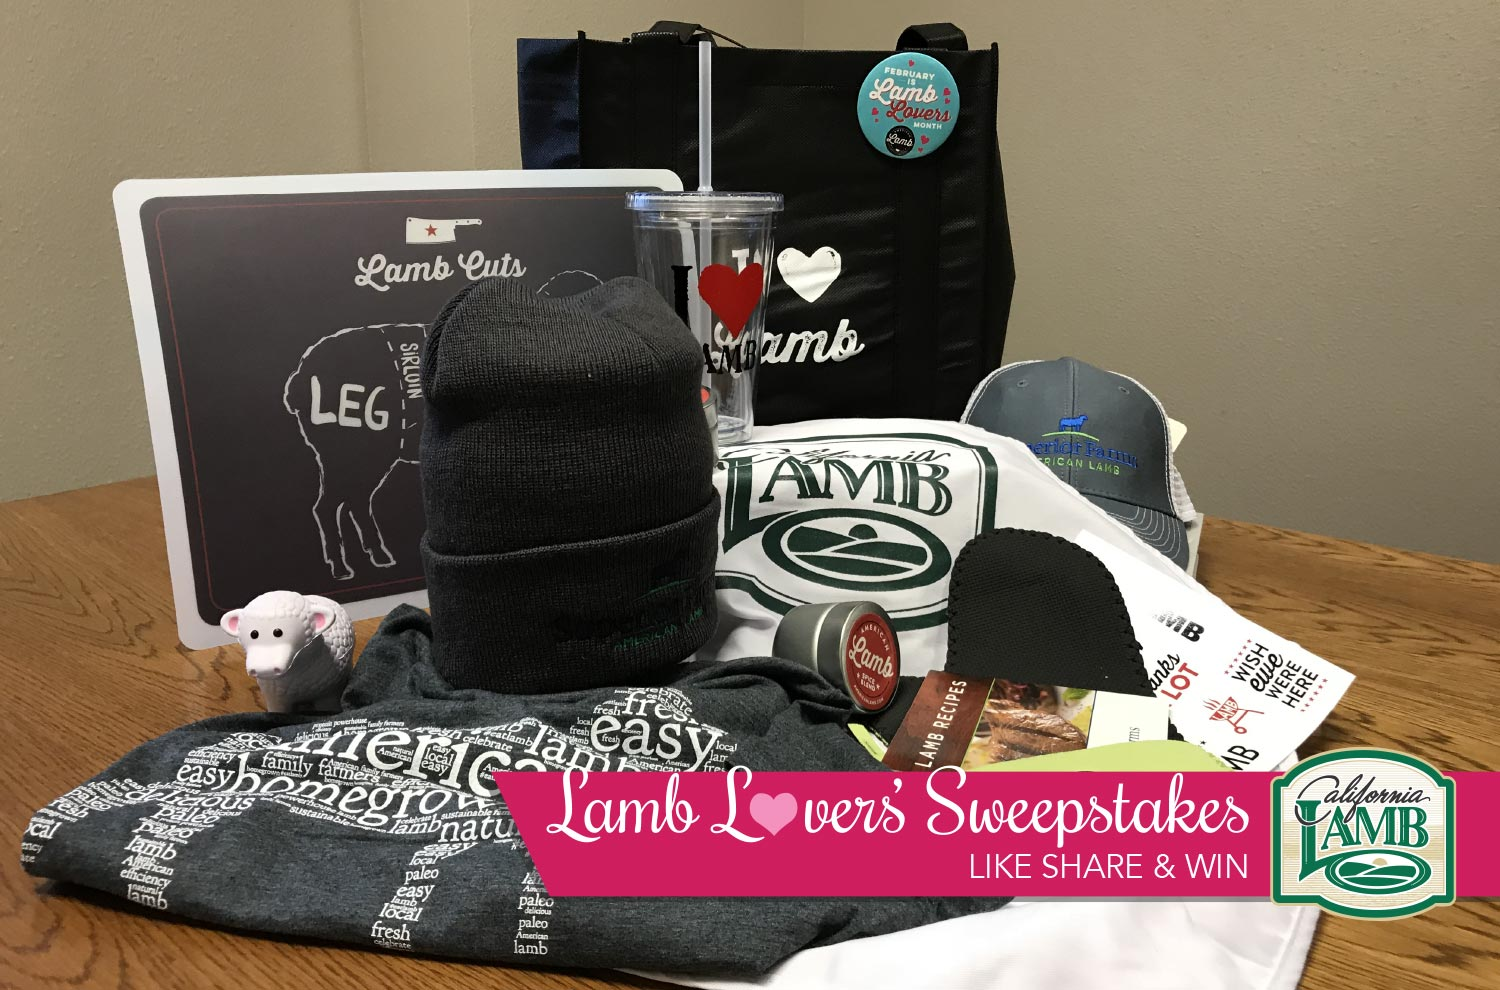 Lamb Lovers' Sweepstakes